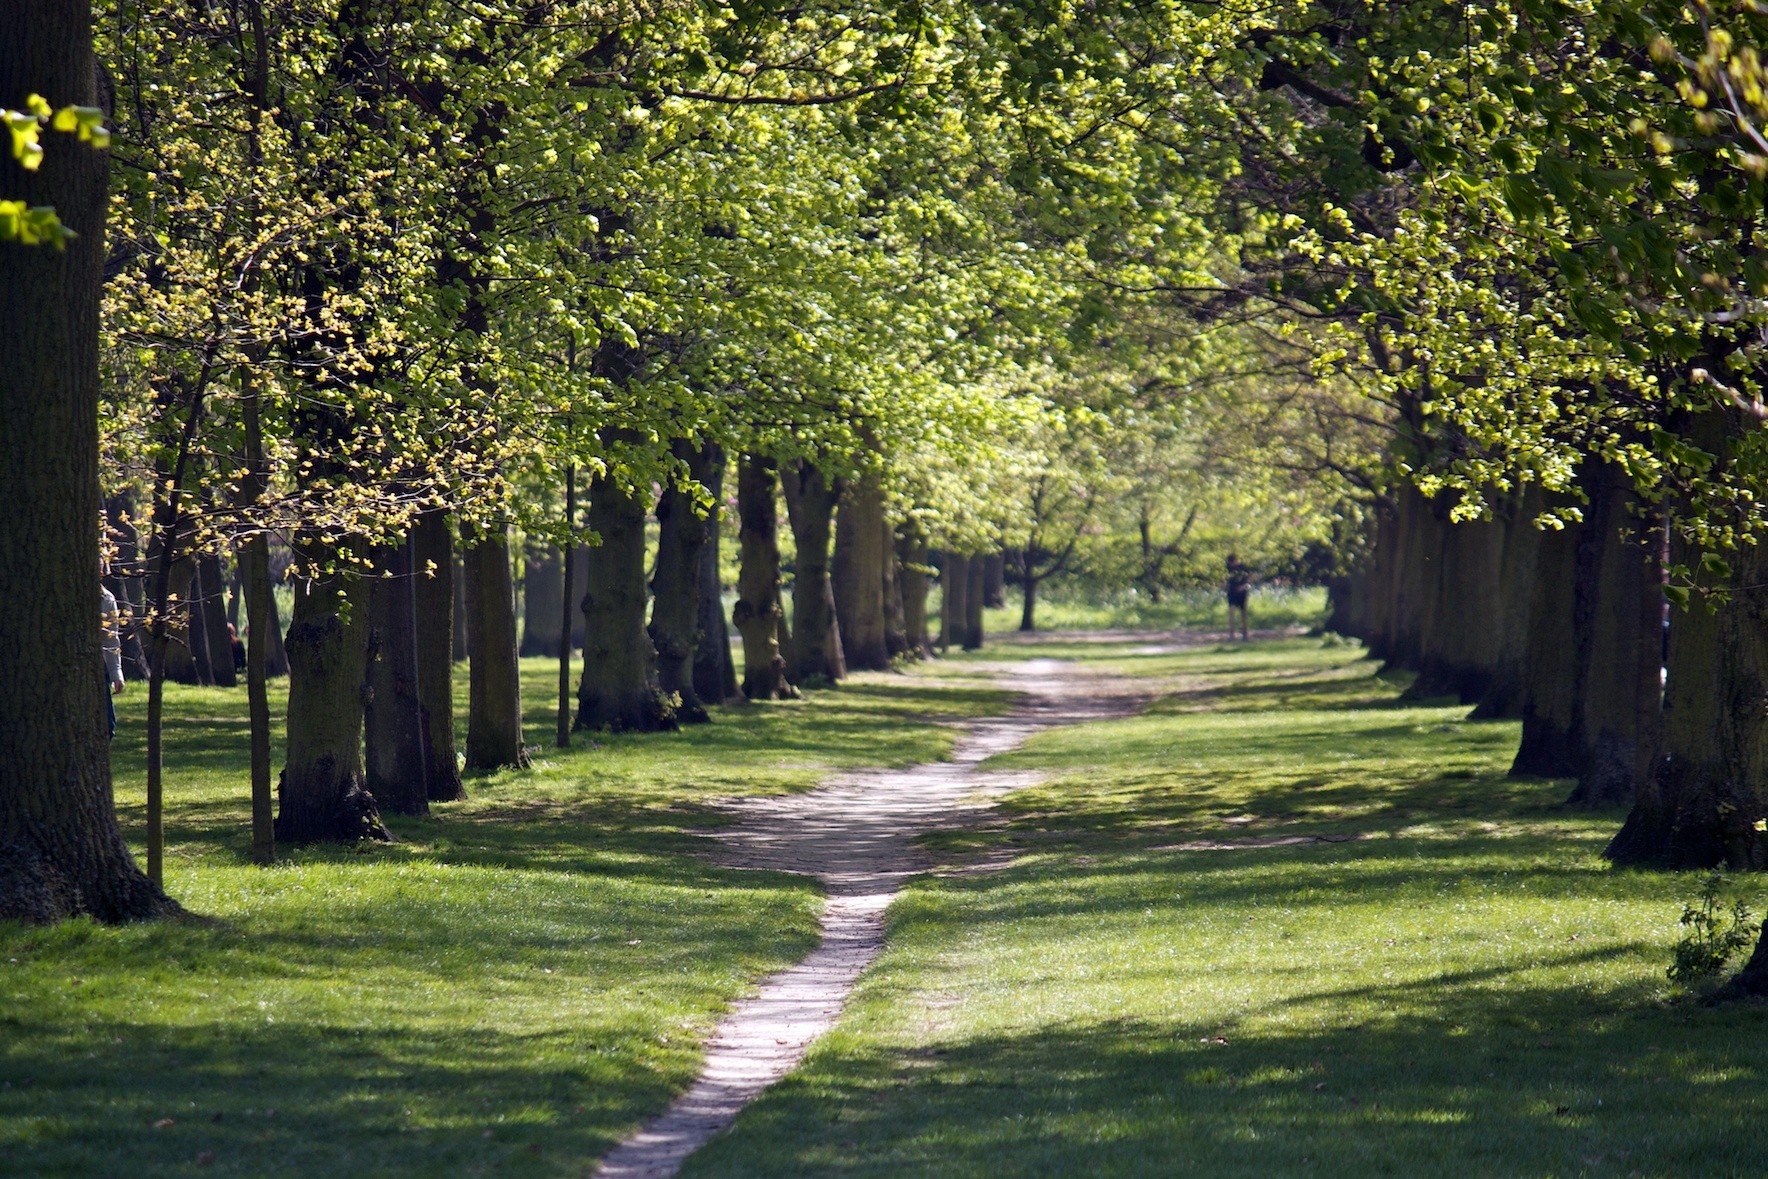 Footpath in Regents Park